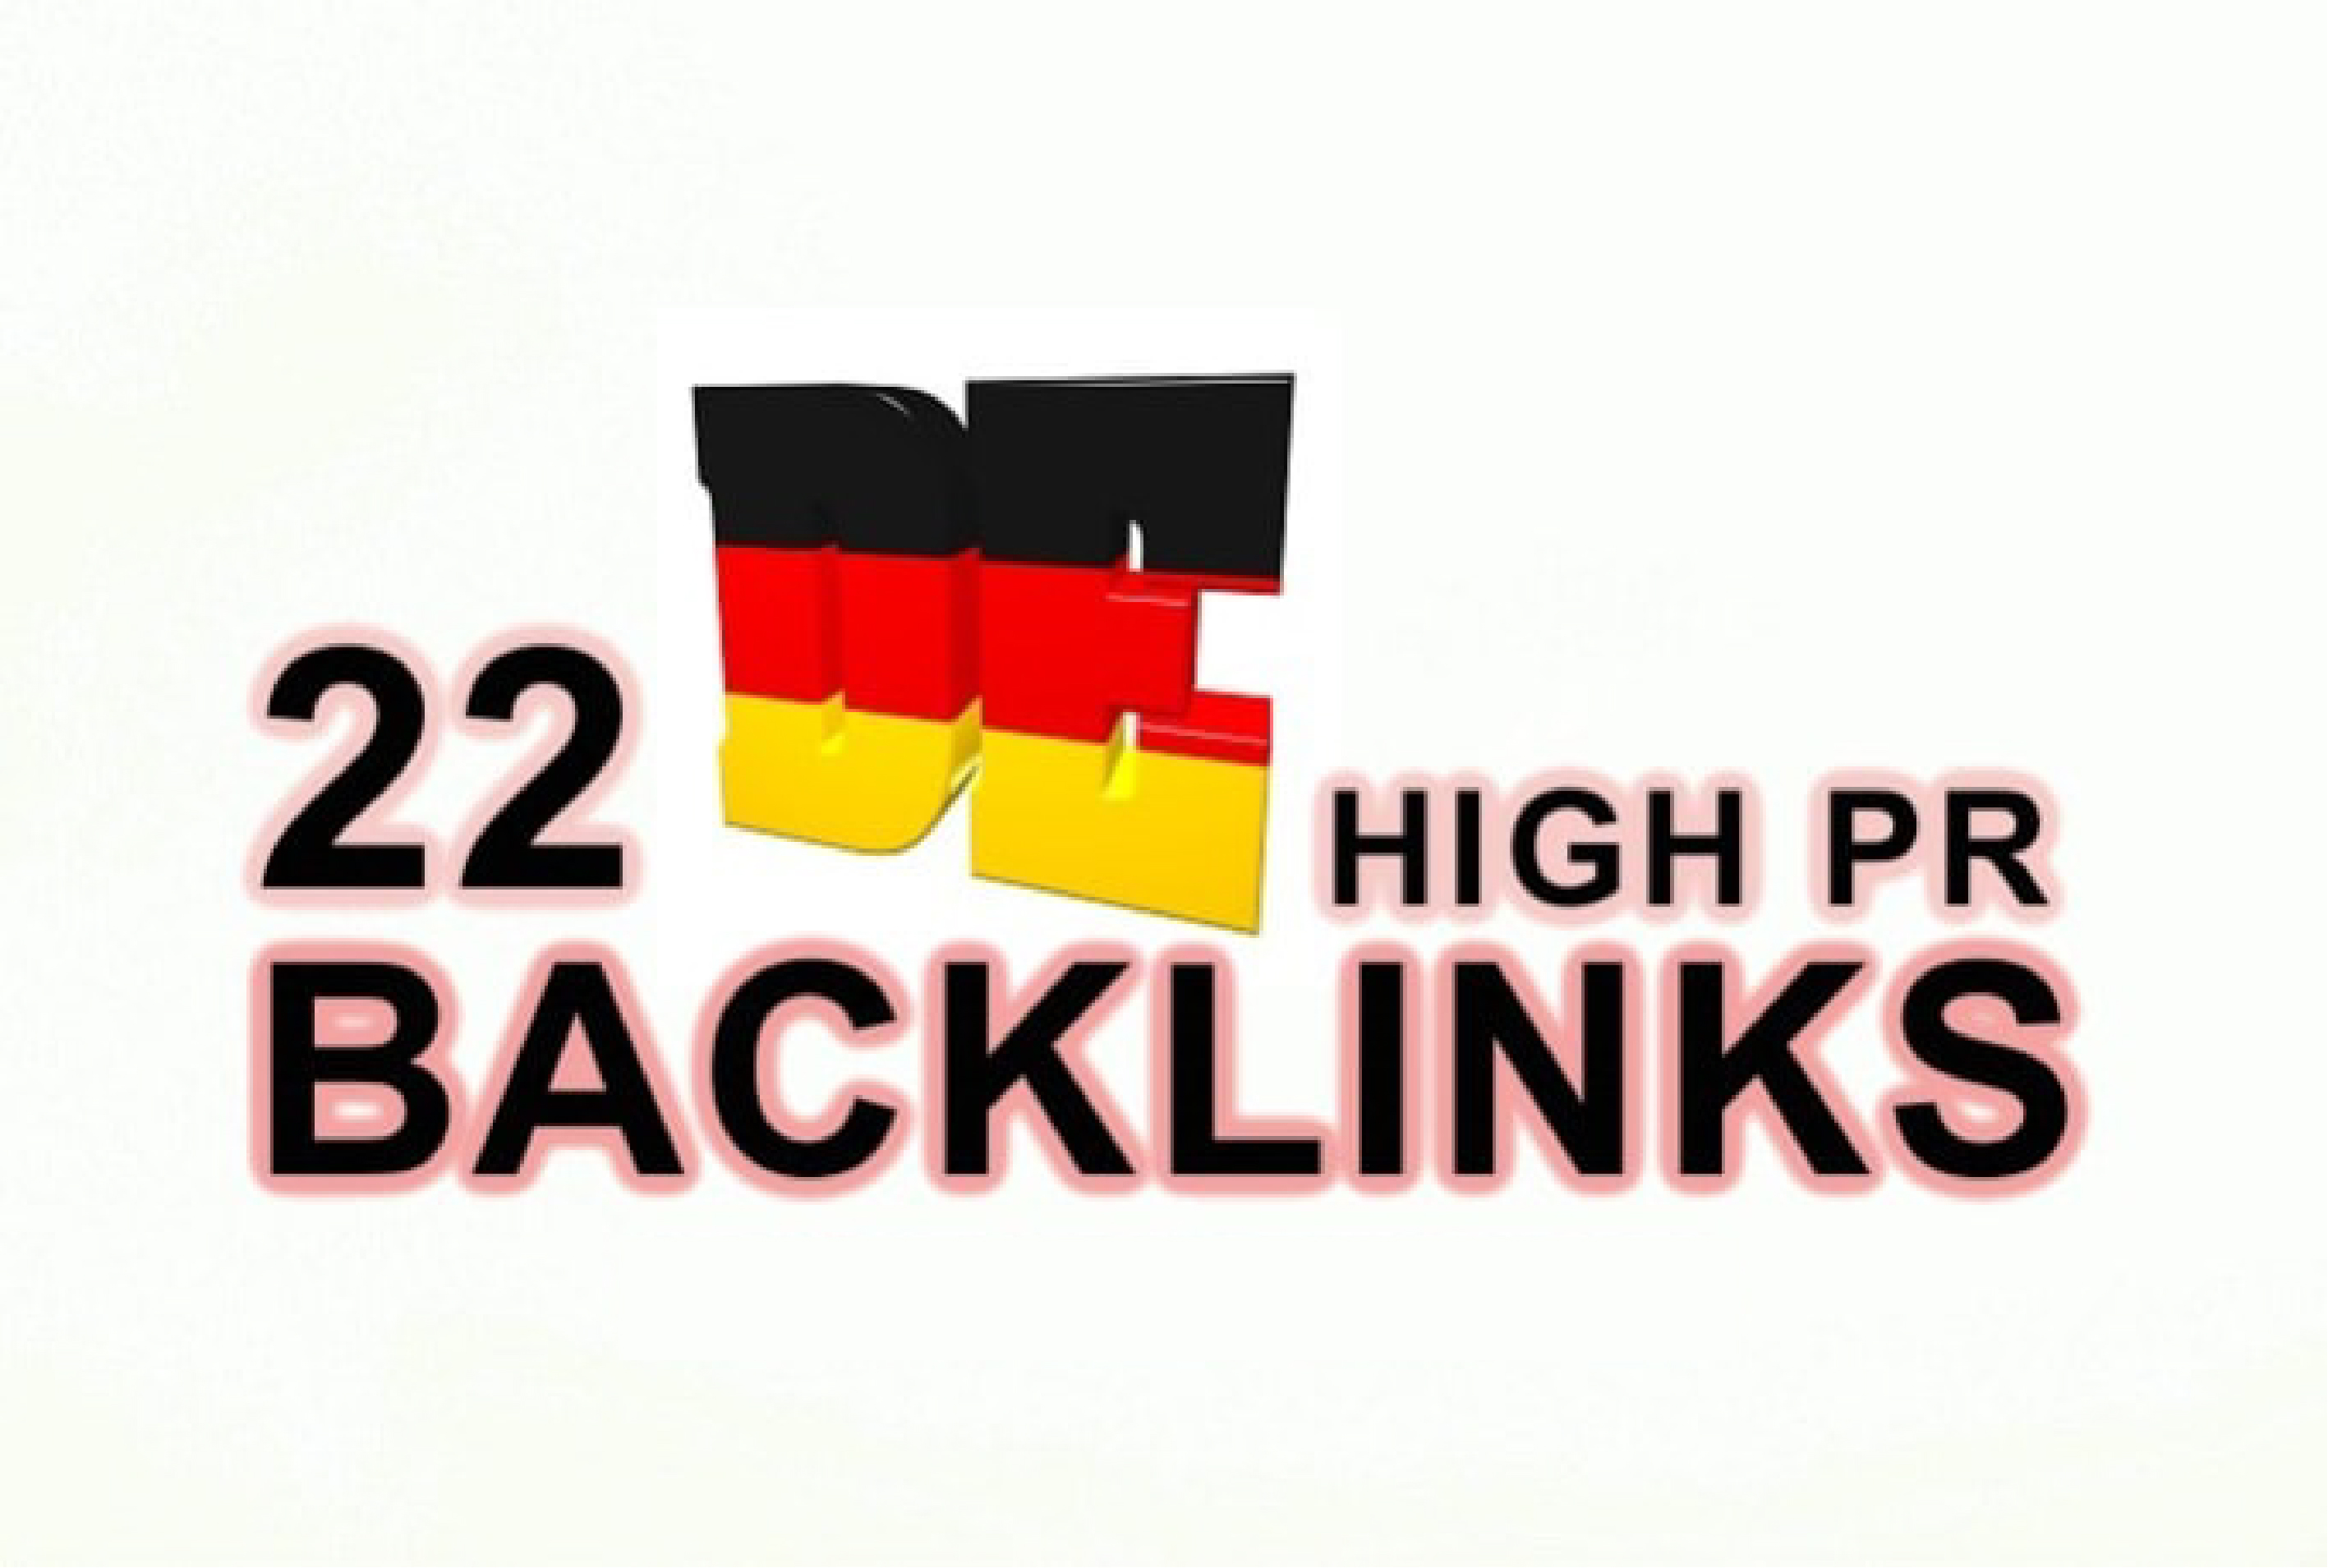 I will build 22 germane high pr backlinks